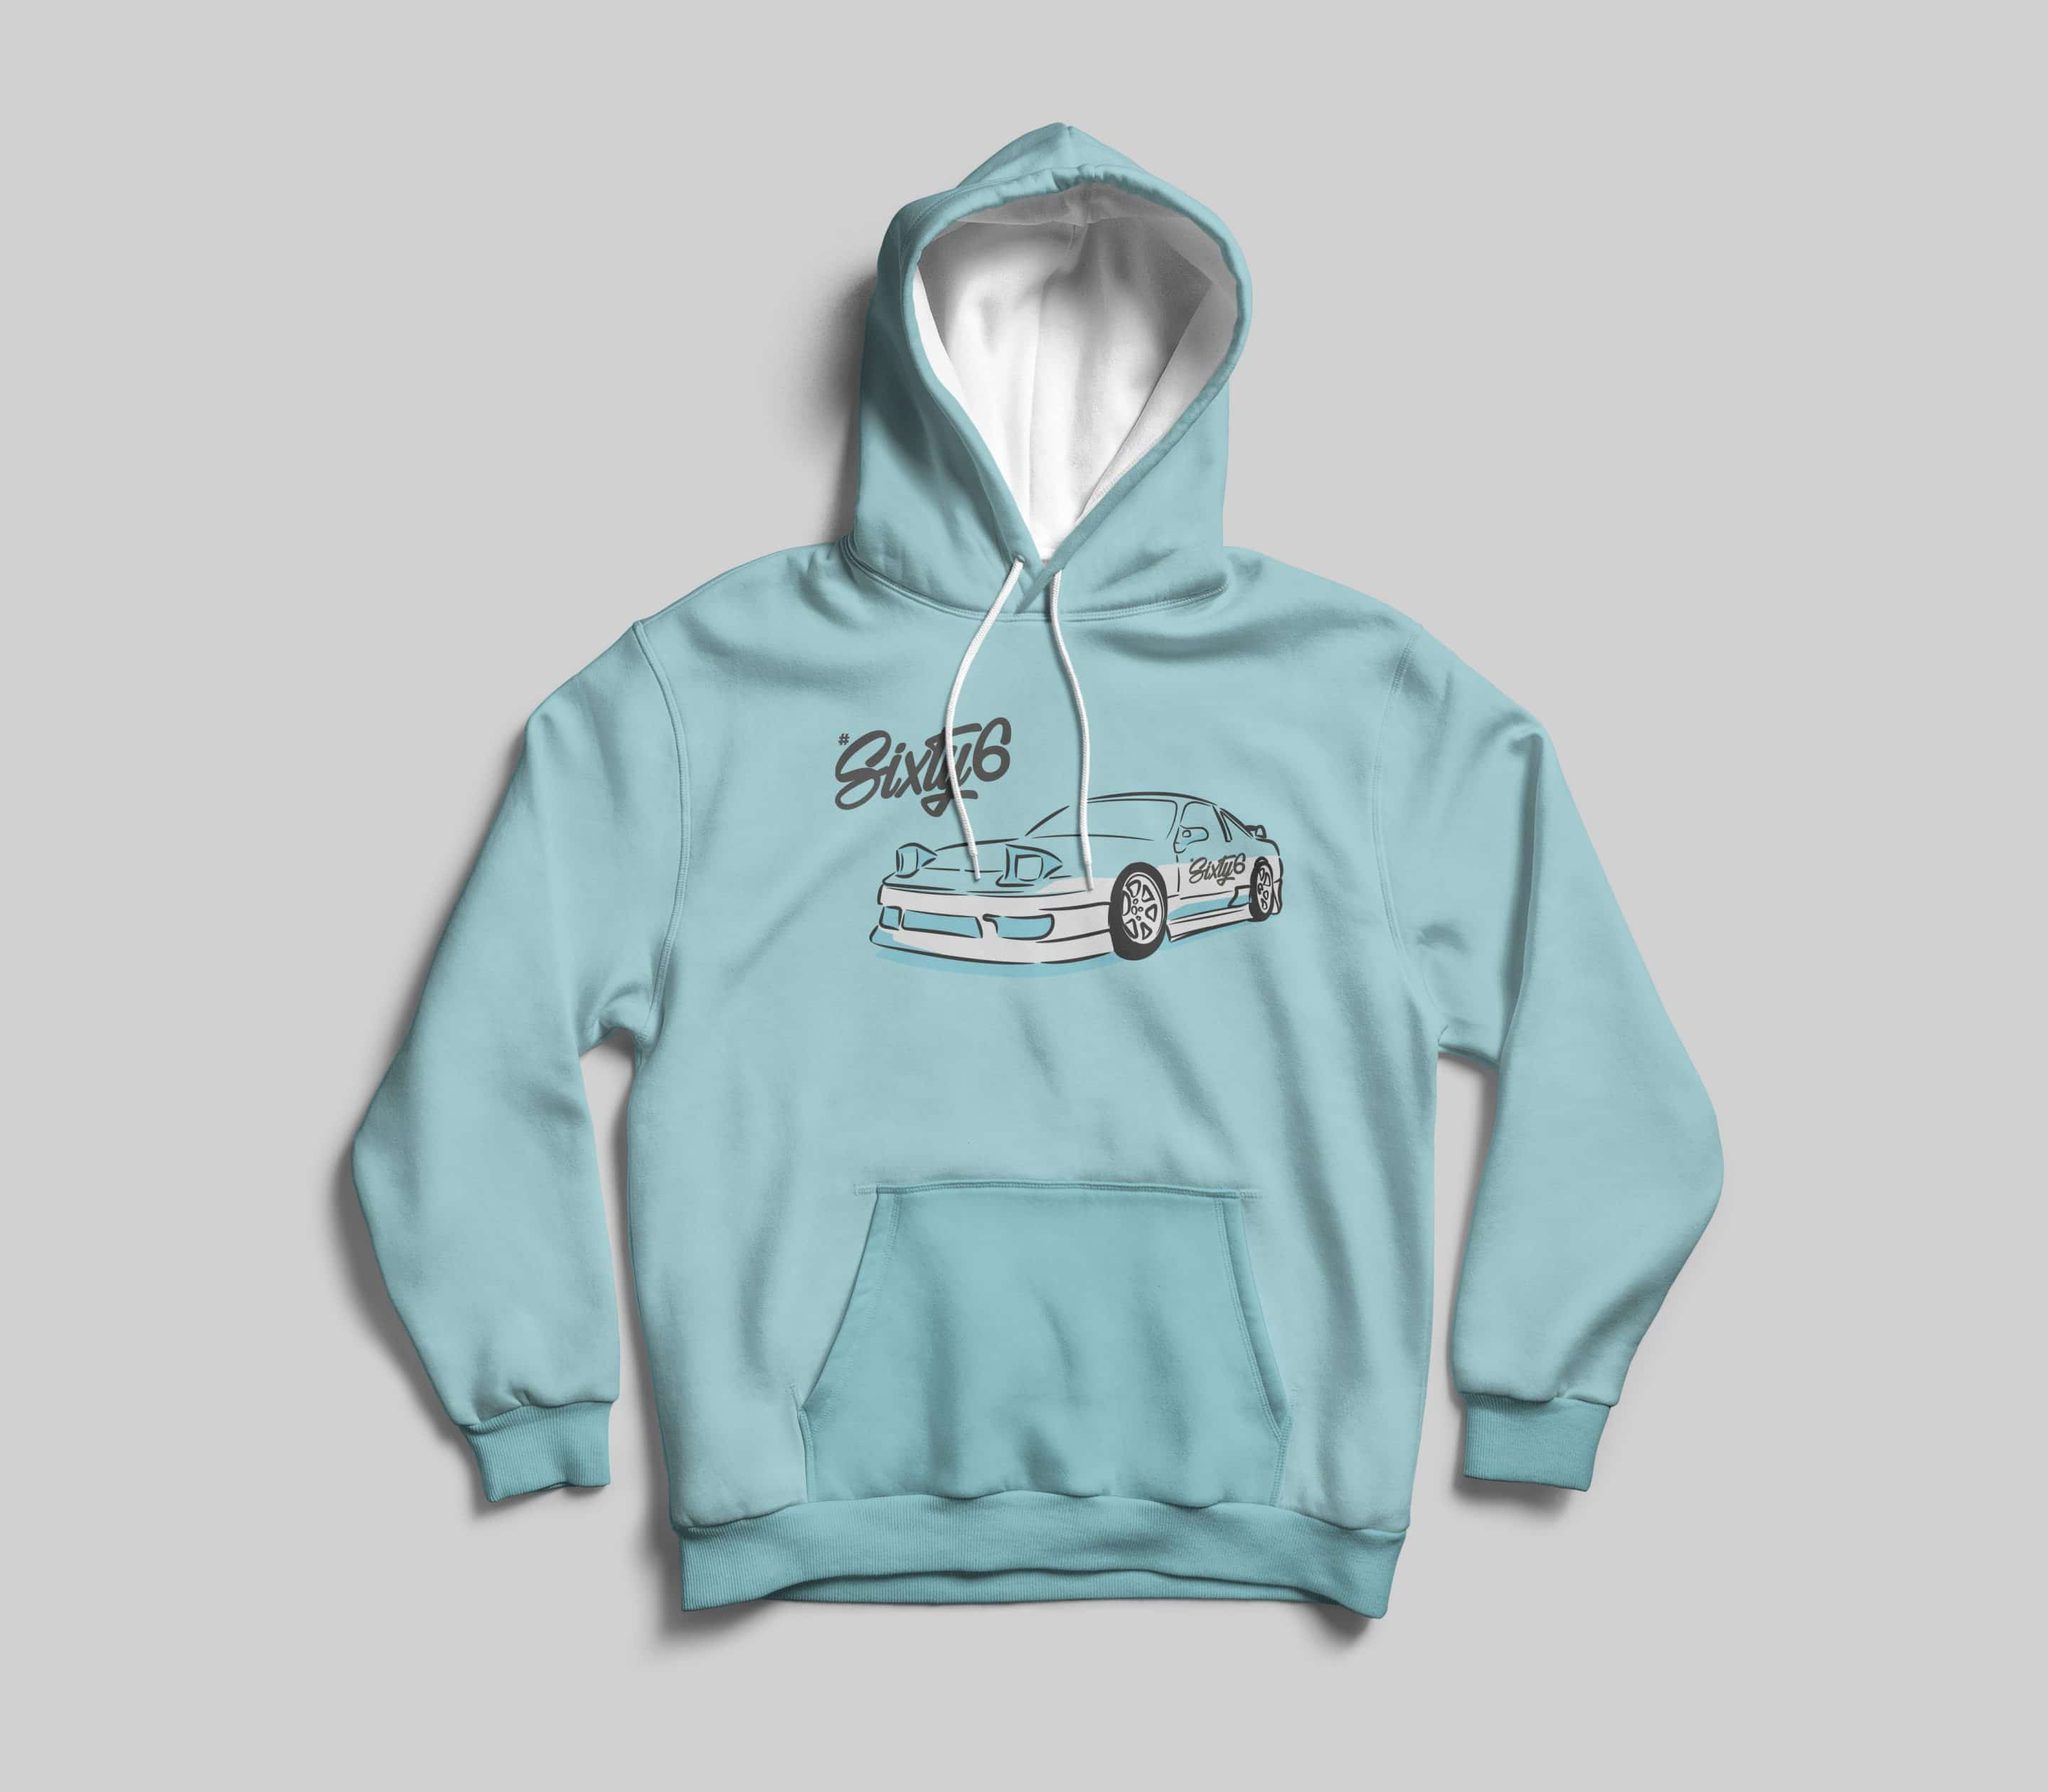 hashtag sixty six illustrated car graphic on light blue hoodie